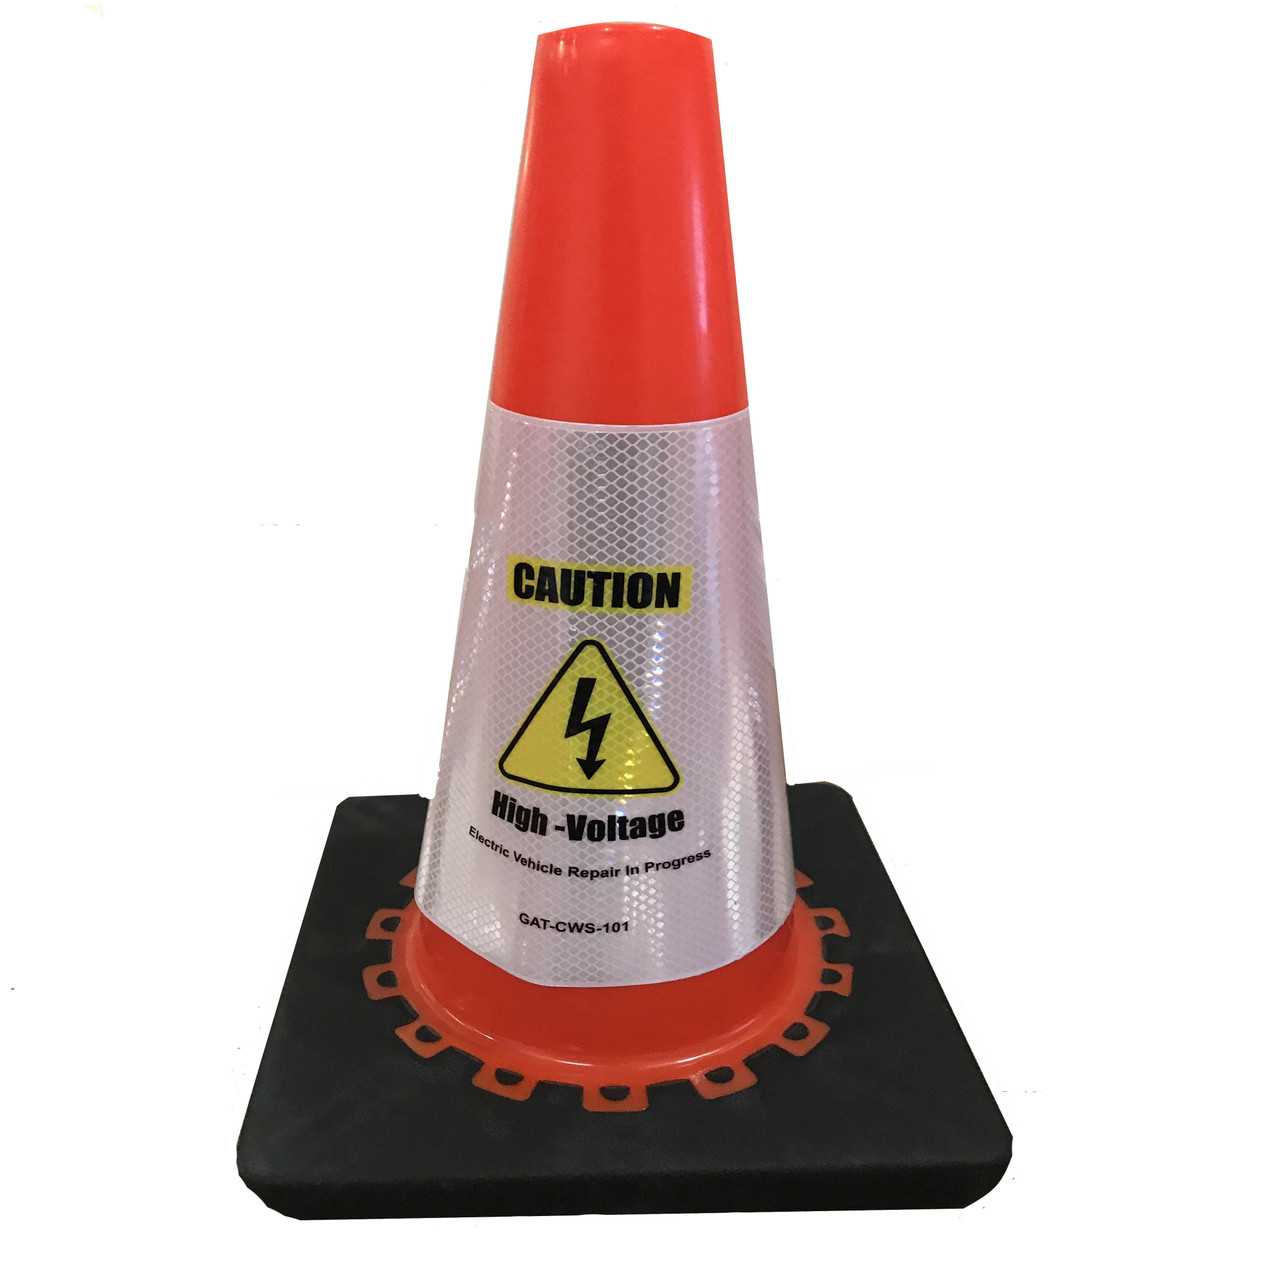 Electric Vehicle High Voltage Caution Sign - Cone Collar-5